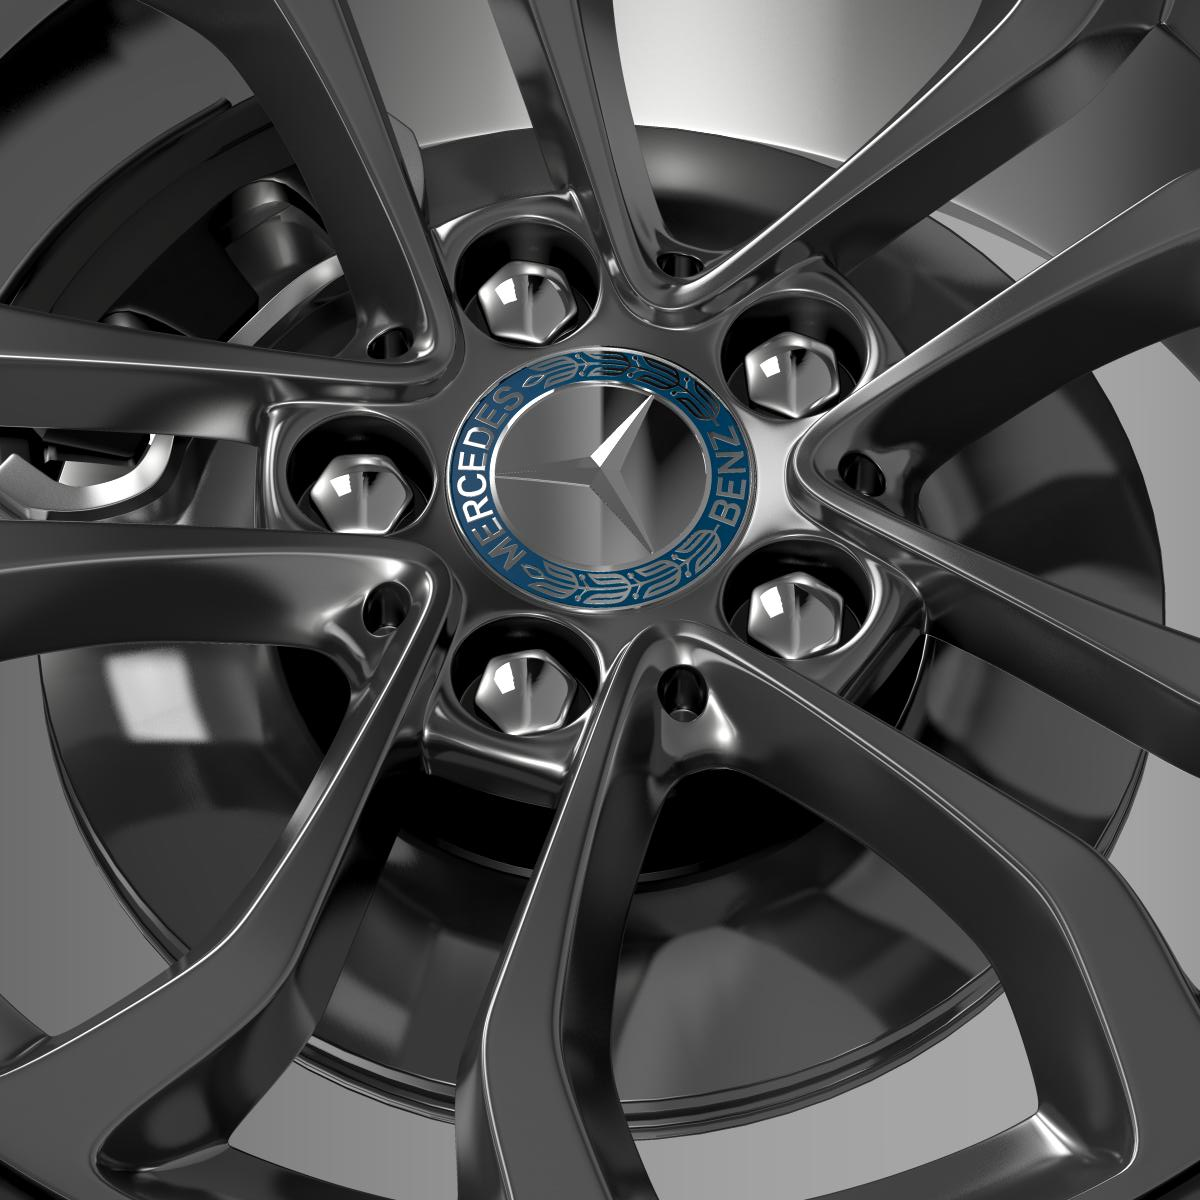 mercedes benz c 220 wheel 3d model 3ds max fbx c4d lwo ma mb hrc xsi obj 210761